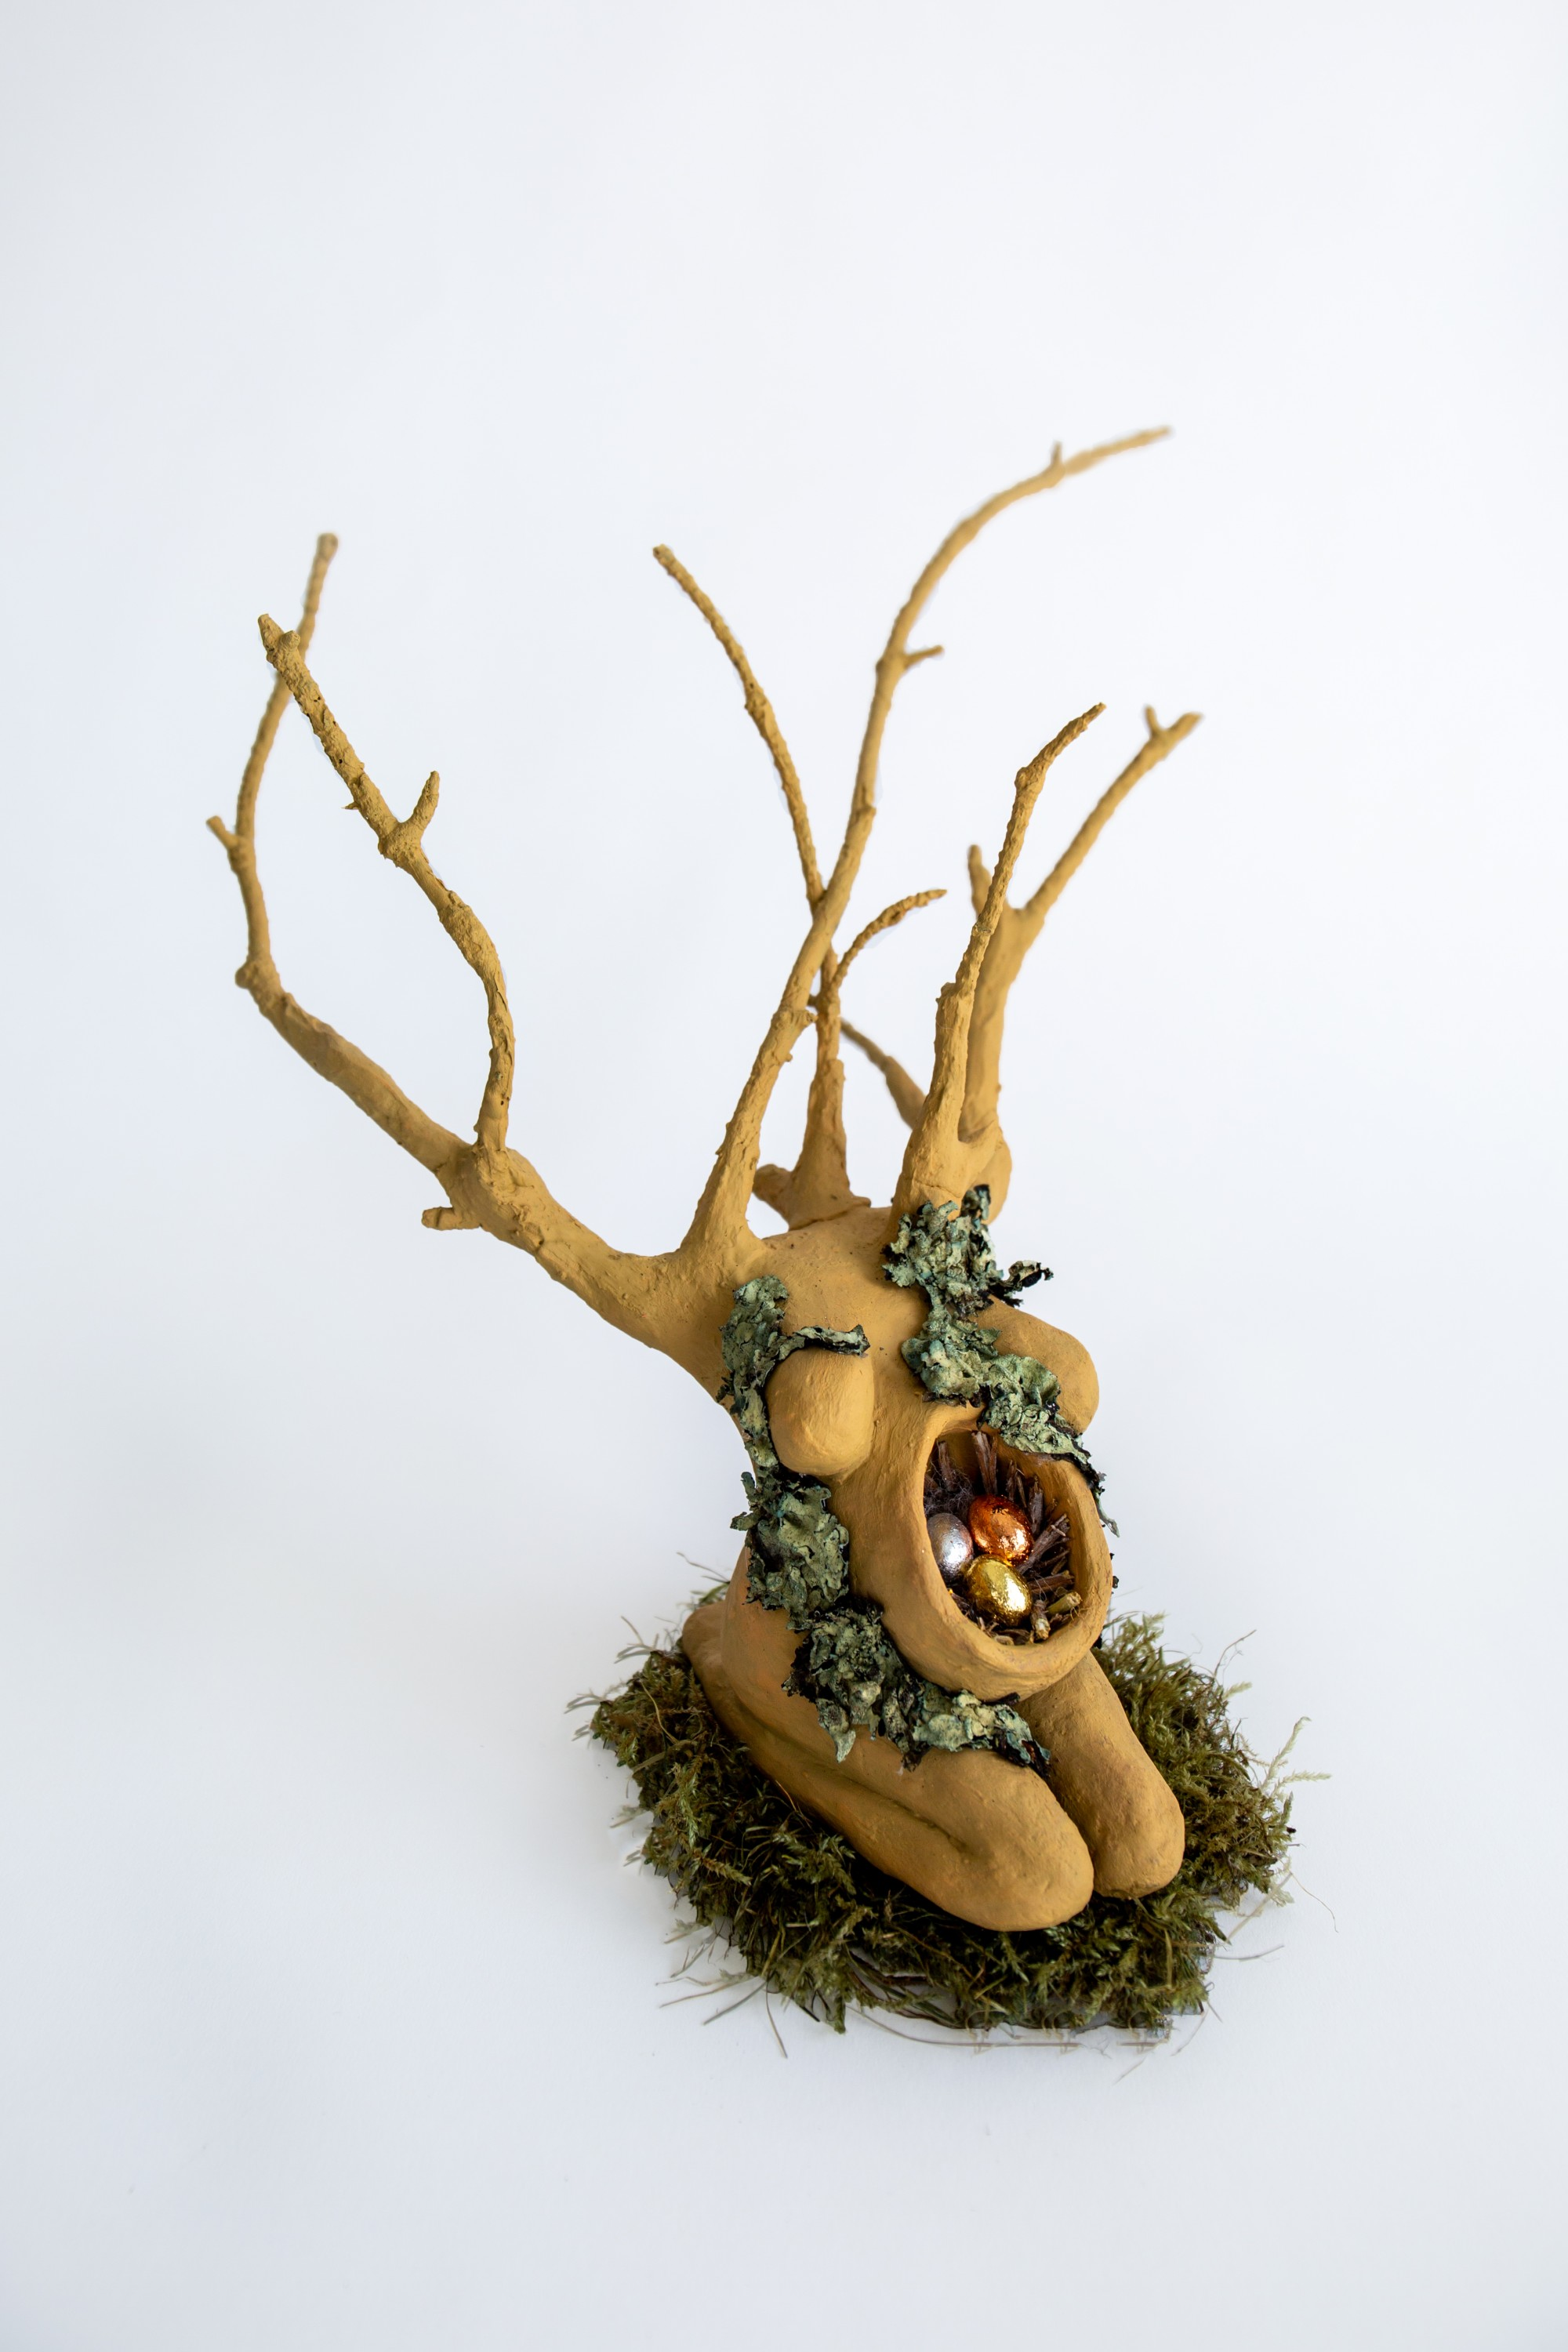 This figure is a pregnant Earth Goddess figure painted in a green hue, she kneels on a bed of green moss, lichen stretch over her body, her stomach is open with a nest inside and three eegs one copper, one gold, and one silver. Her body, from the arms up